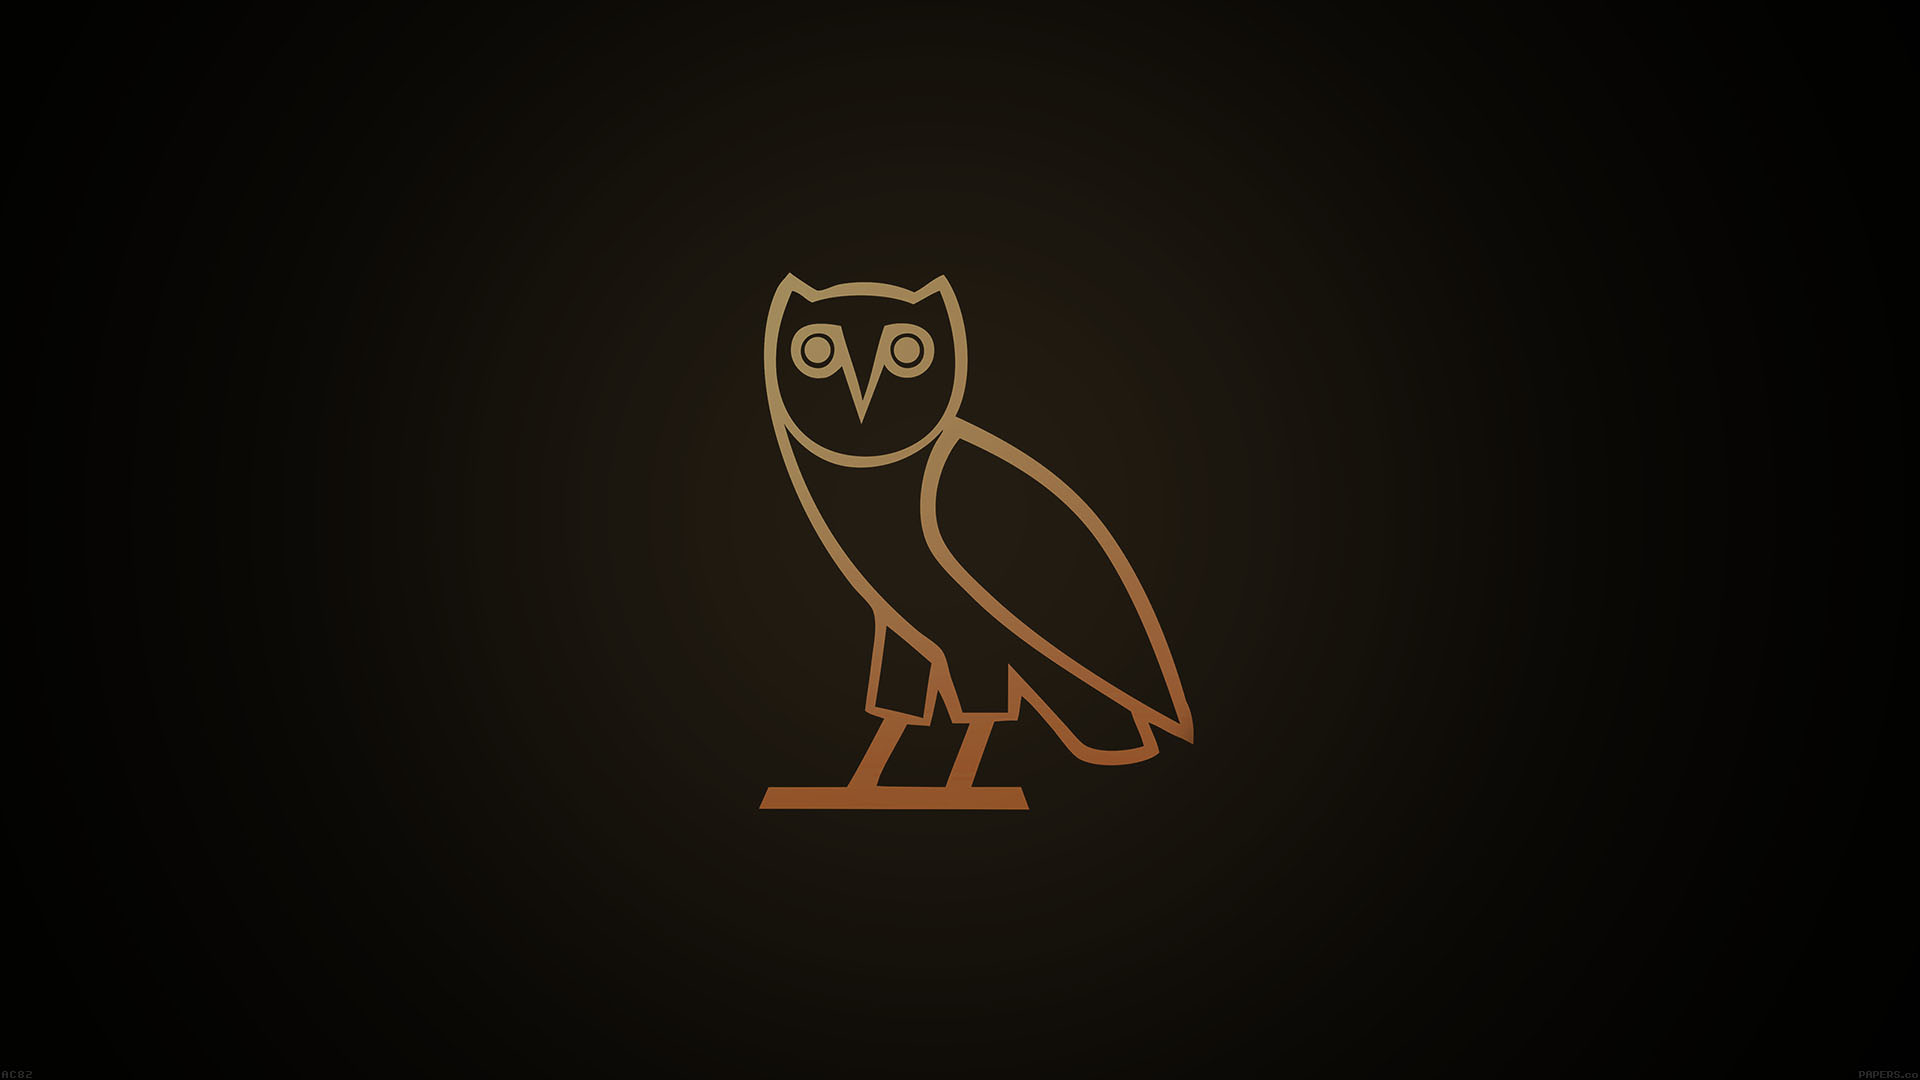 Cute Owl Wallpaper For Mac Ac82 Wallpaper Ovo Owl Logo Dark Minimal Papers Co